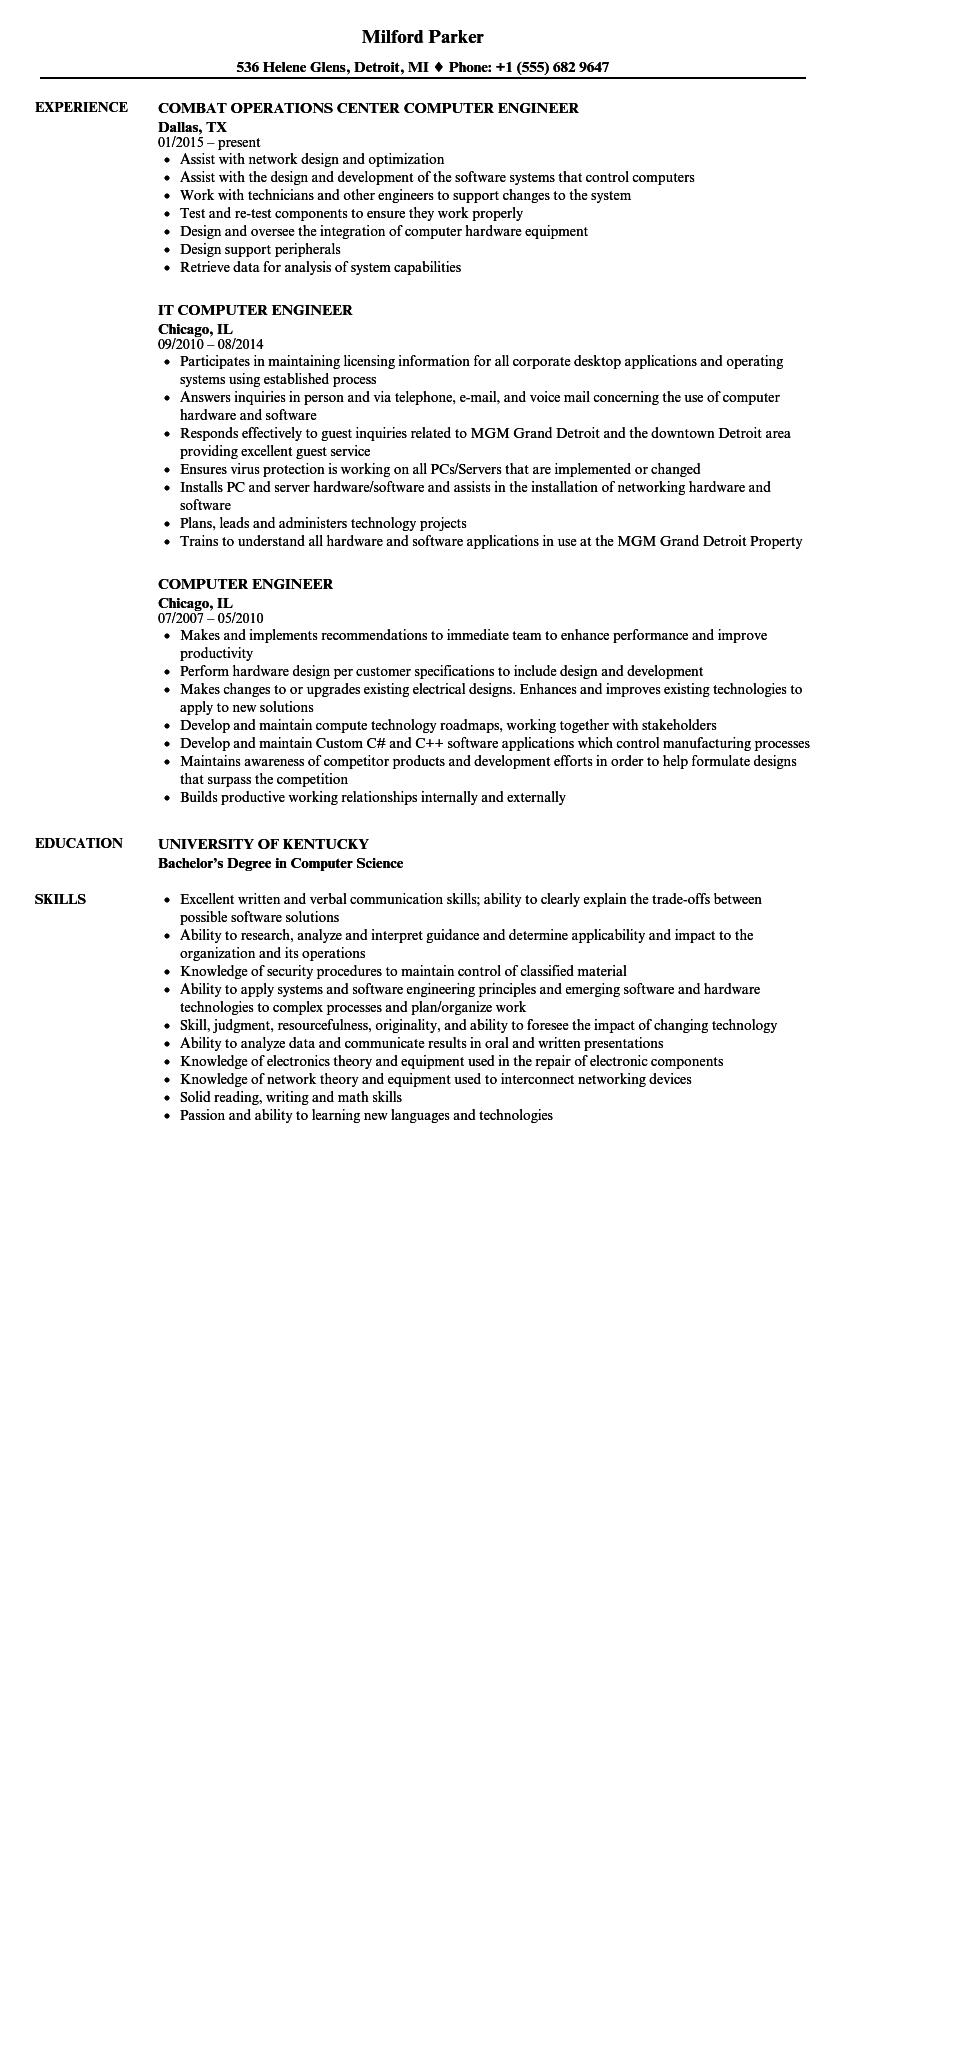 61 Stunning Computer Engineering Resume with Graphics